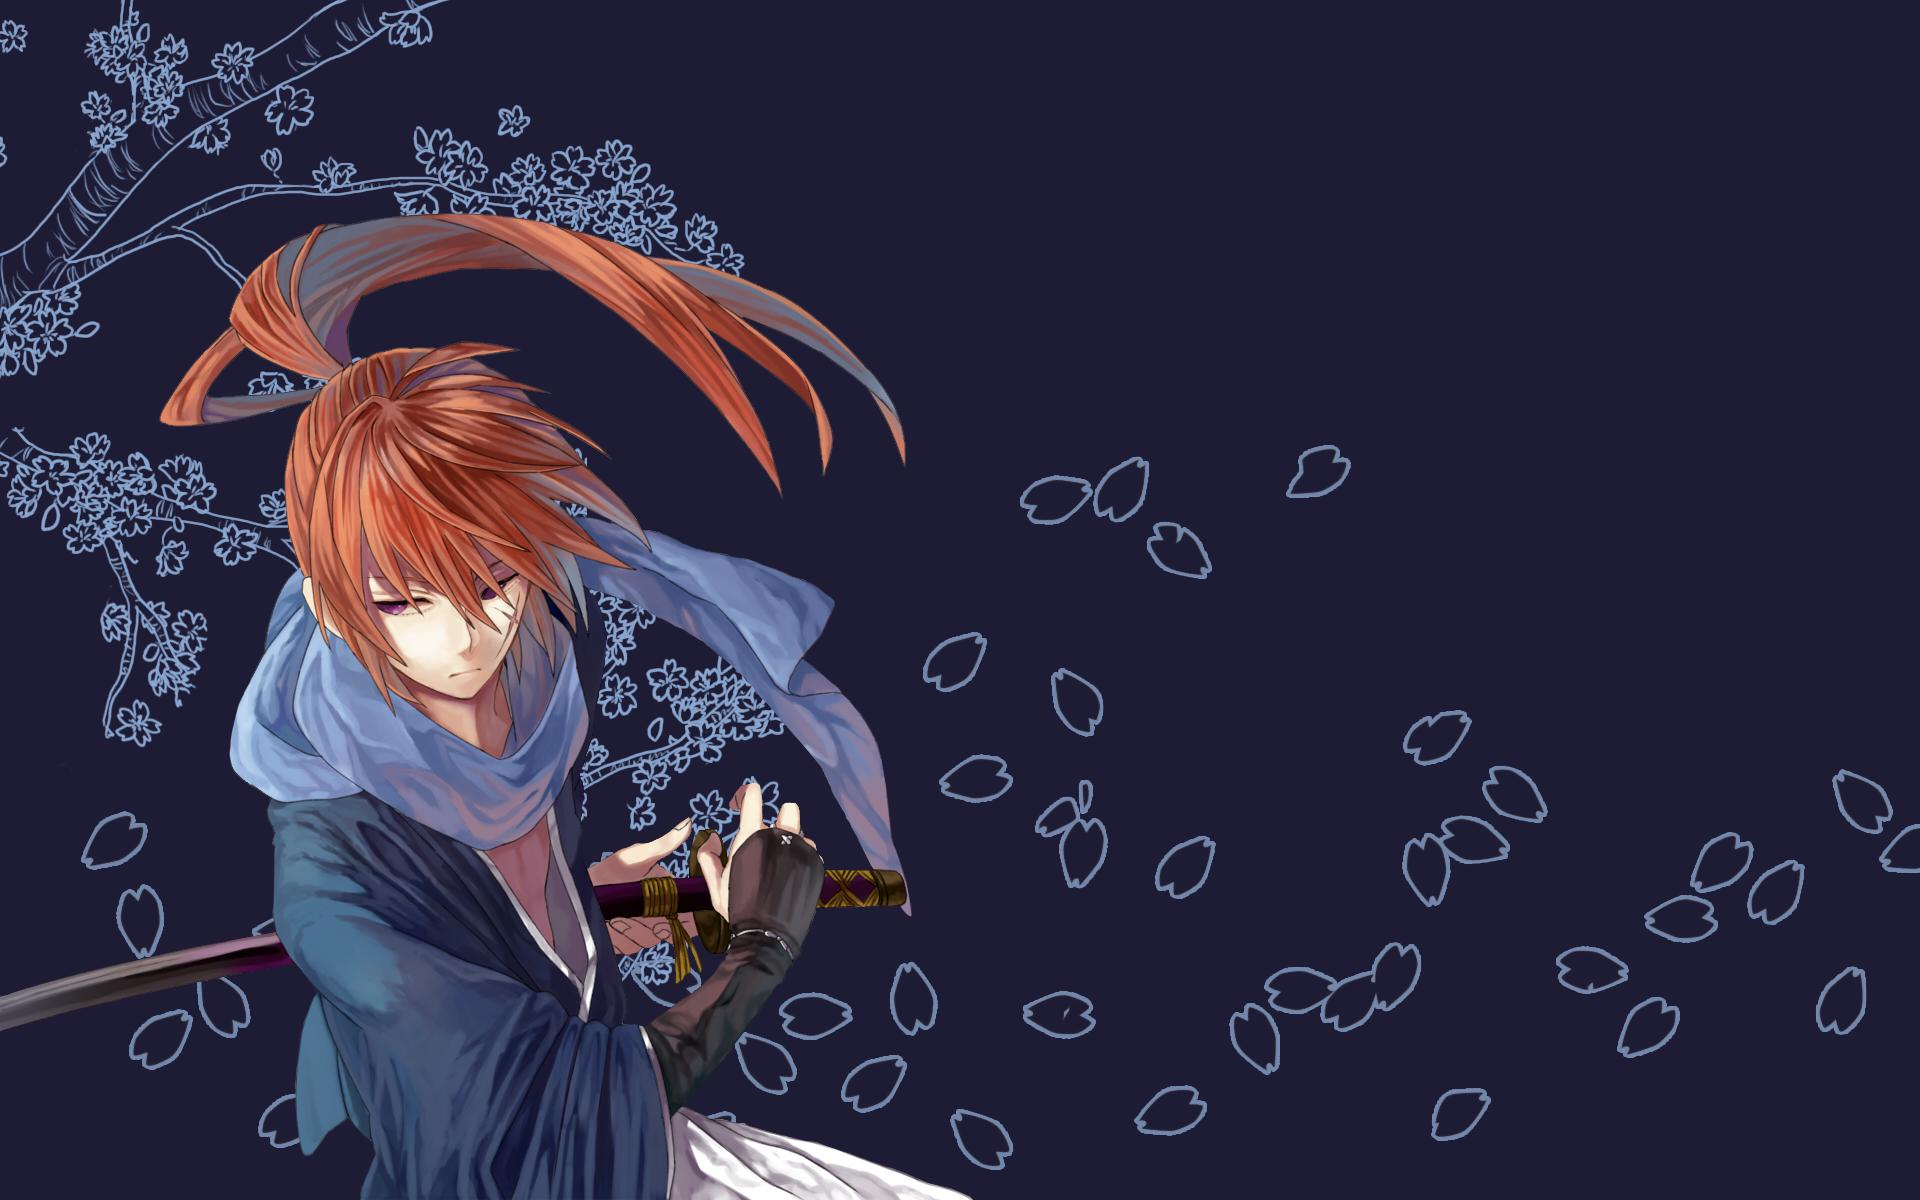 kenshin himura wallpaper - photo #9